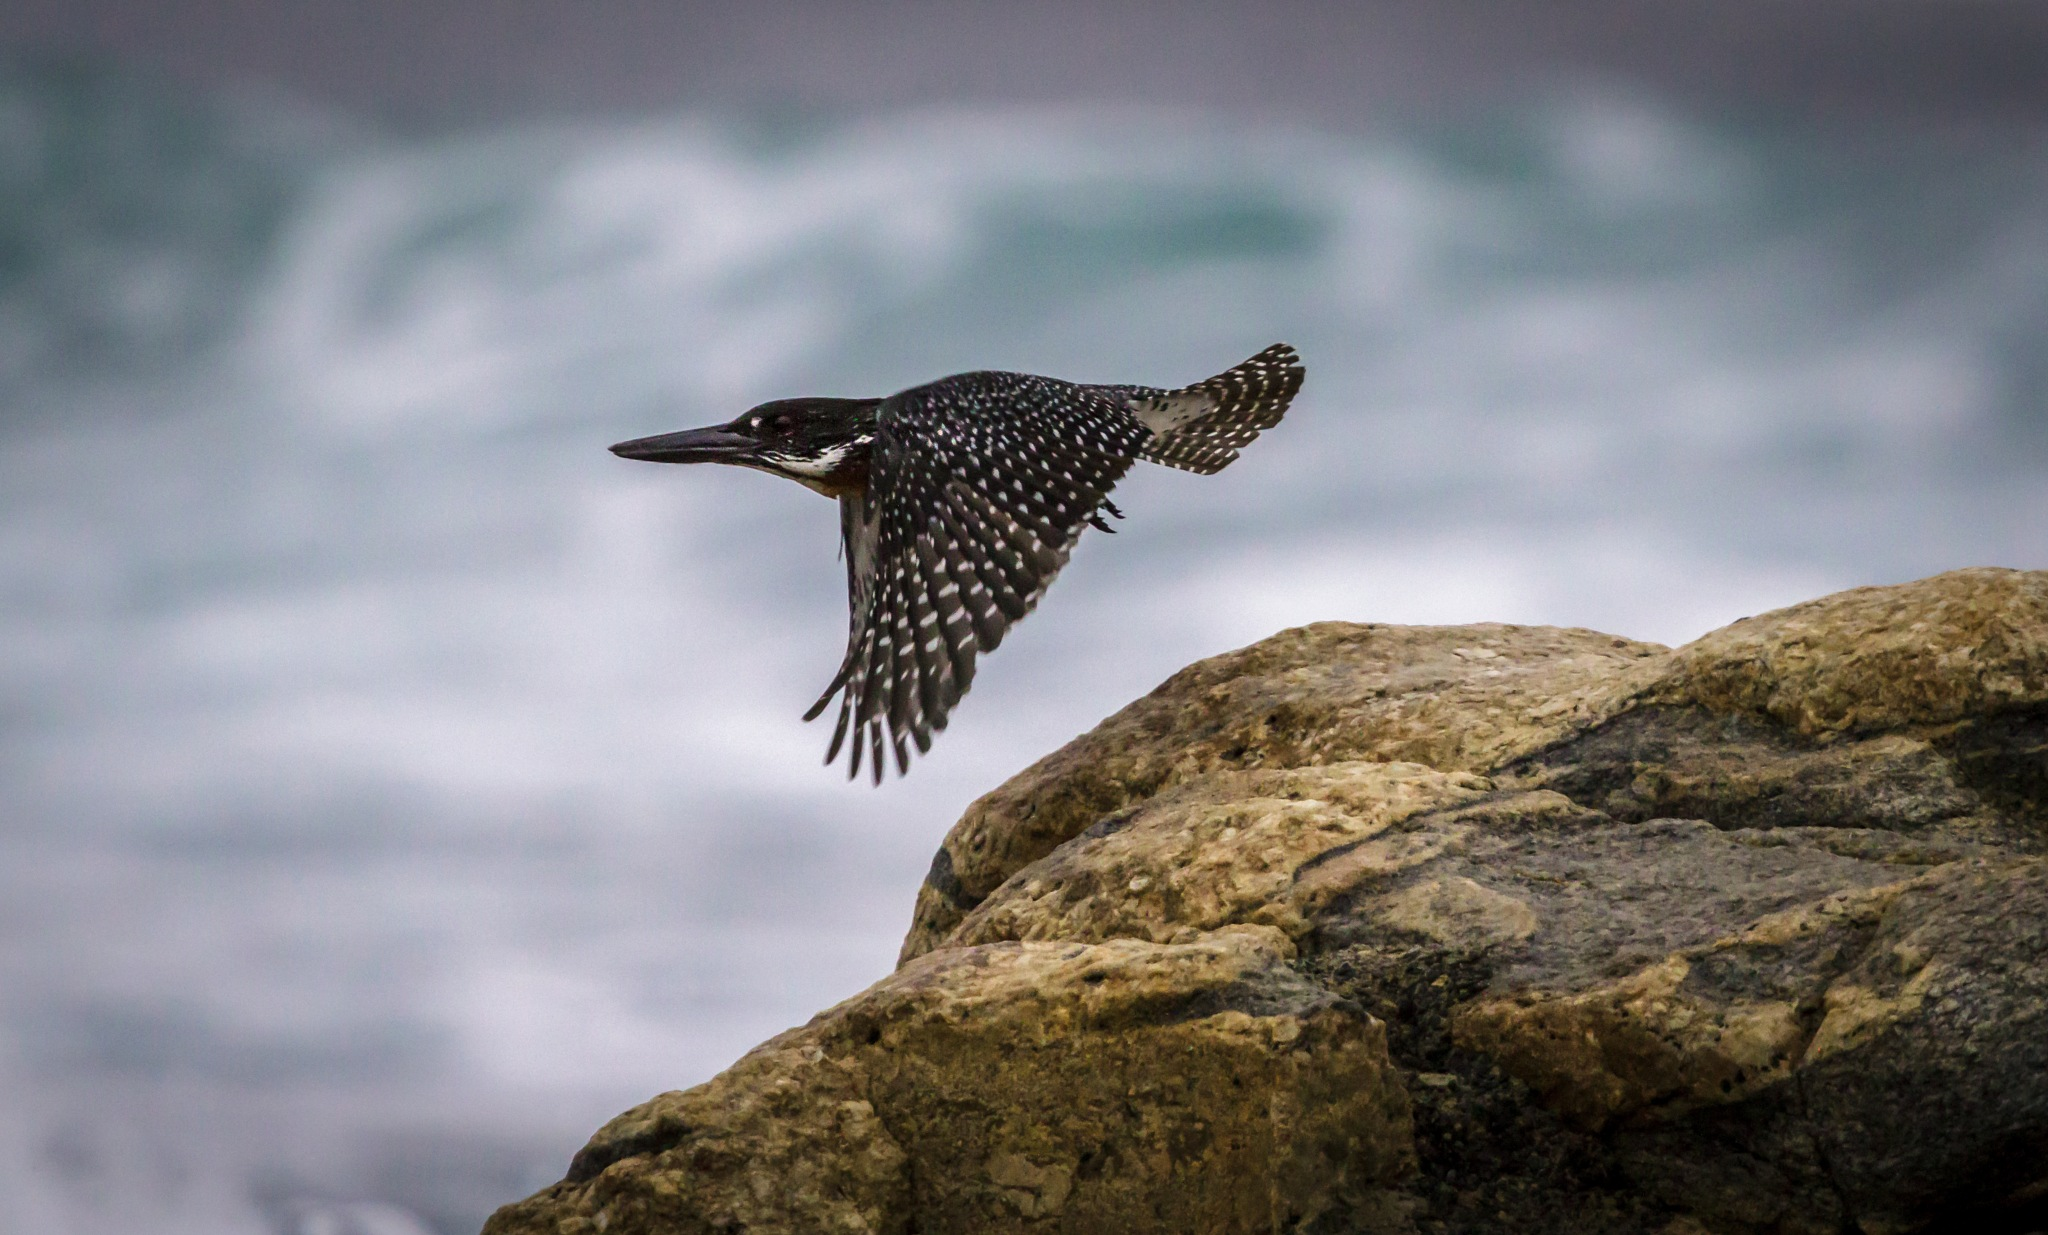 Giant Kingfisher by georgewatson1654